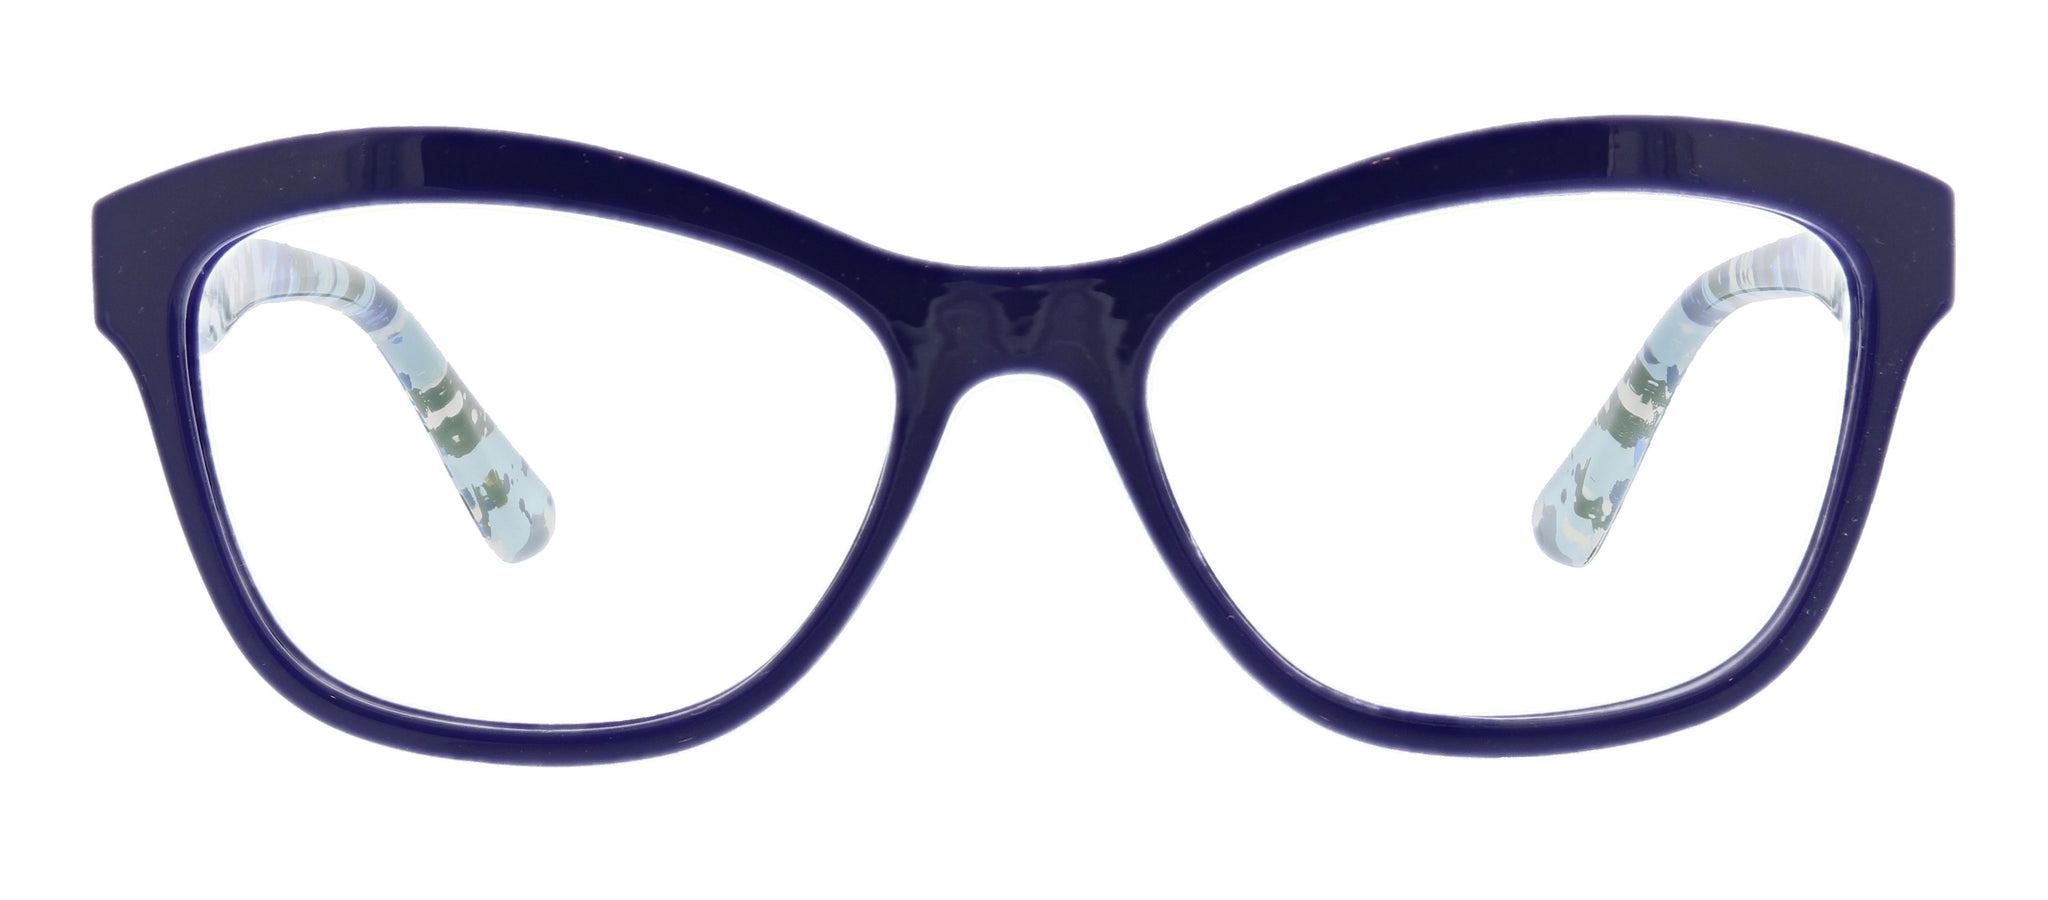 Brushwork in navy blue light cat-eye reading glasses by Peepers